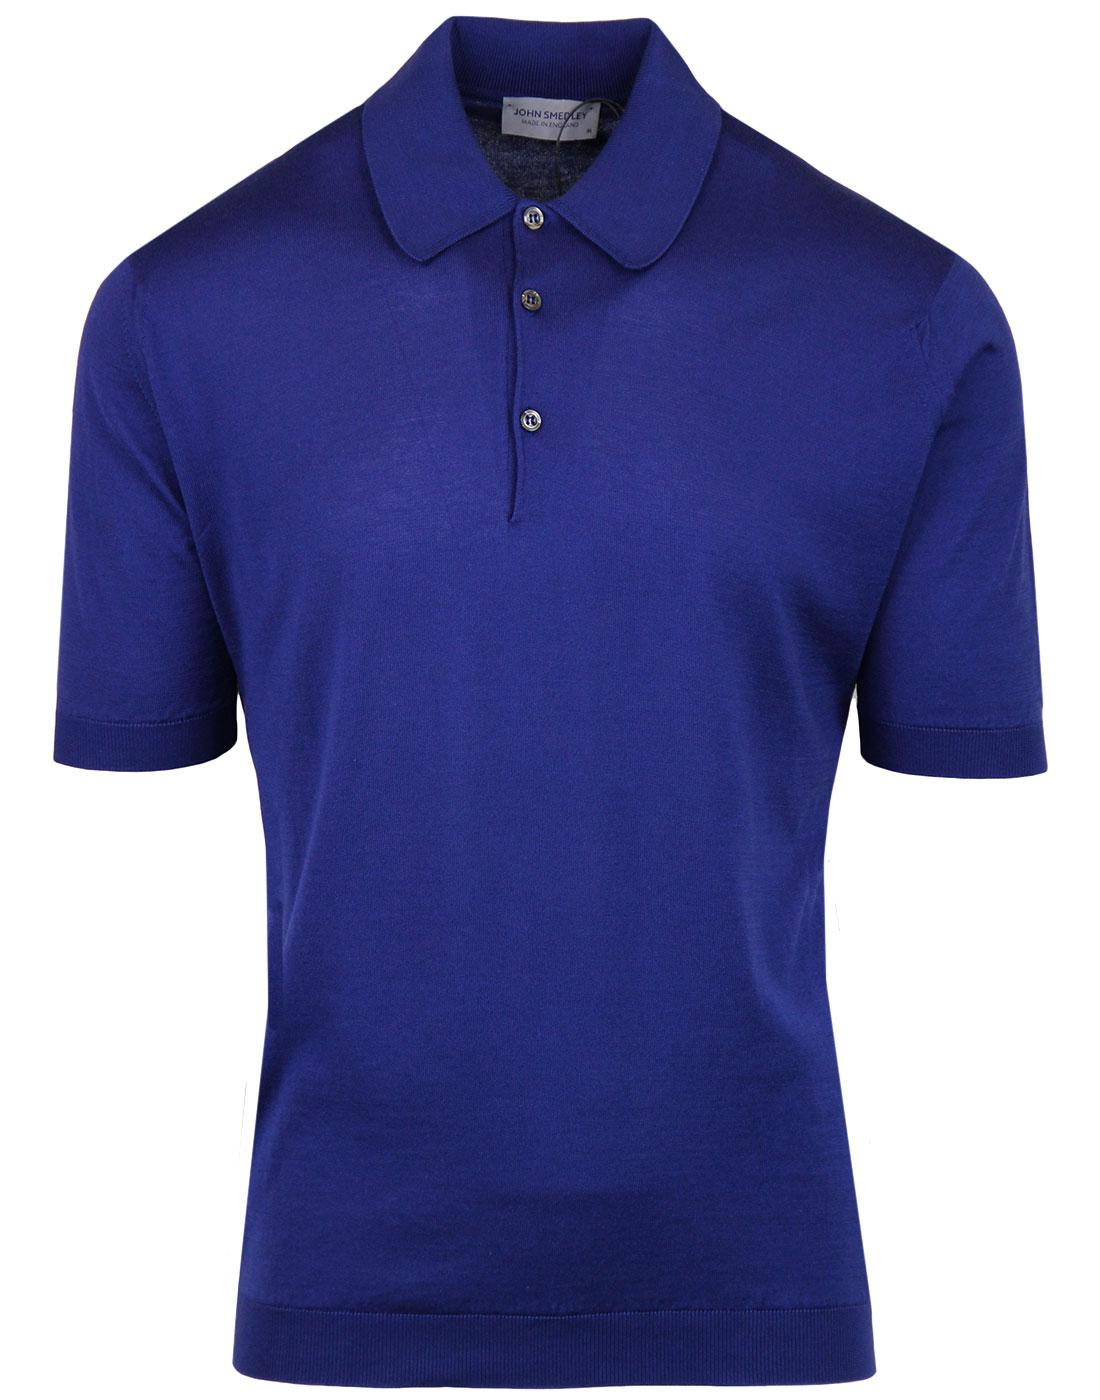 Isis JOHN SMEDLEY Classic Fit Mod Polo Shirt SERGE